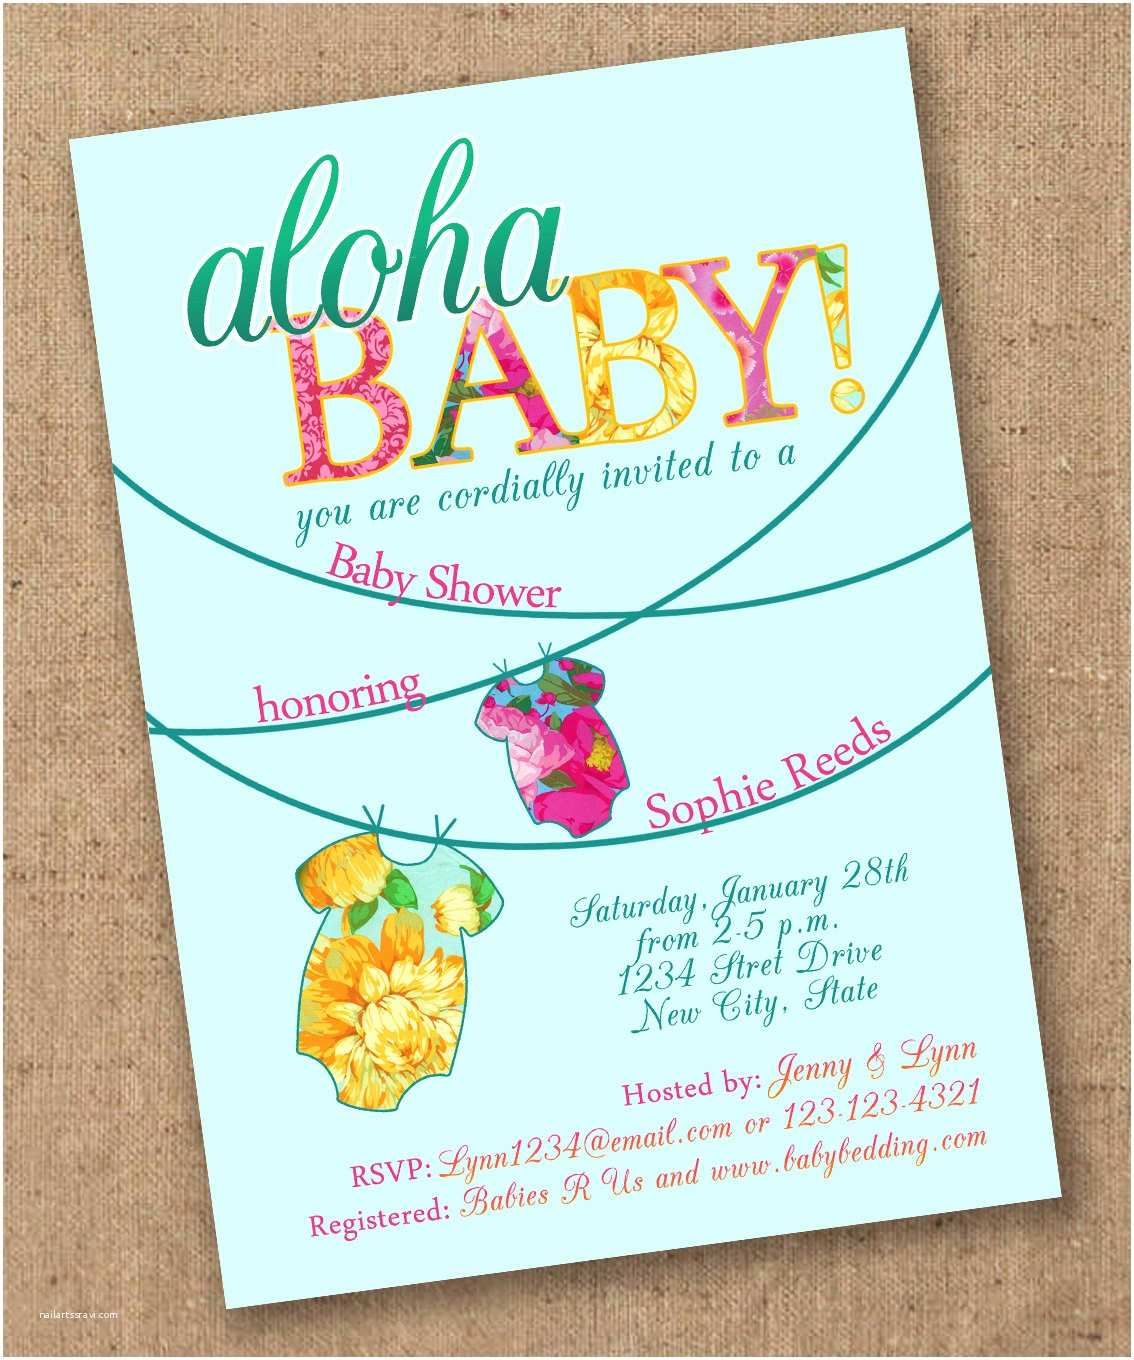 Luau Baby Shower Invitations Tropical Esie Luau Baby Shower Invite by Lovesweetpeacards